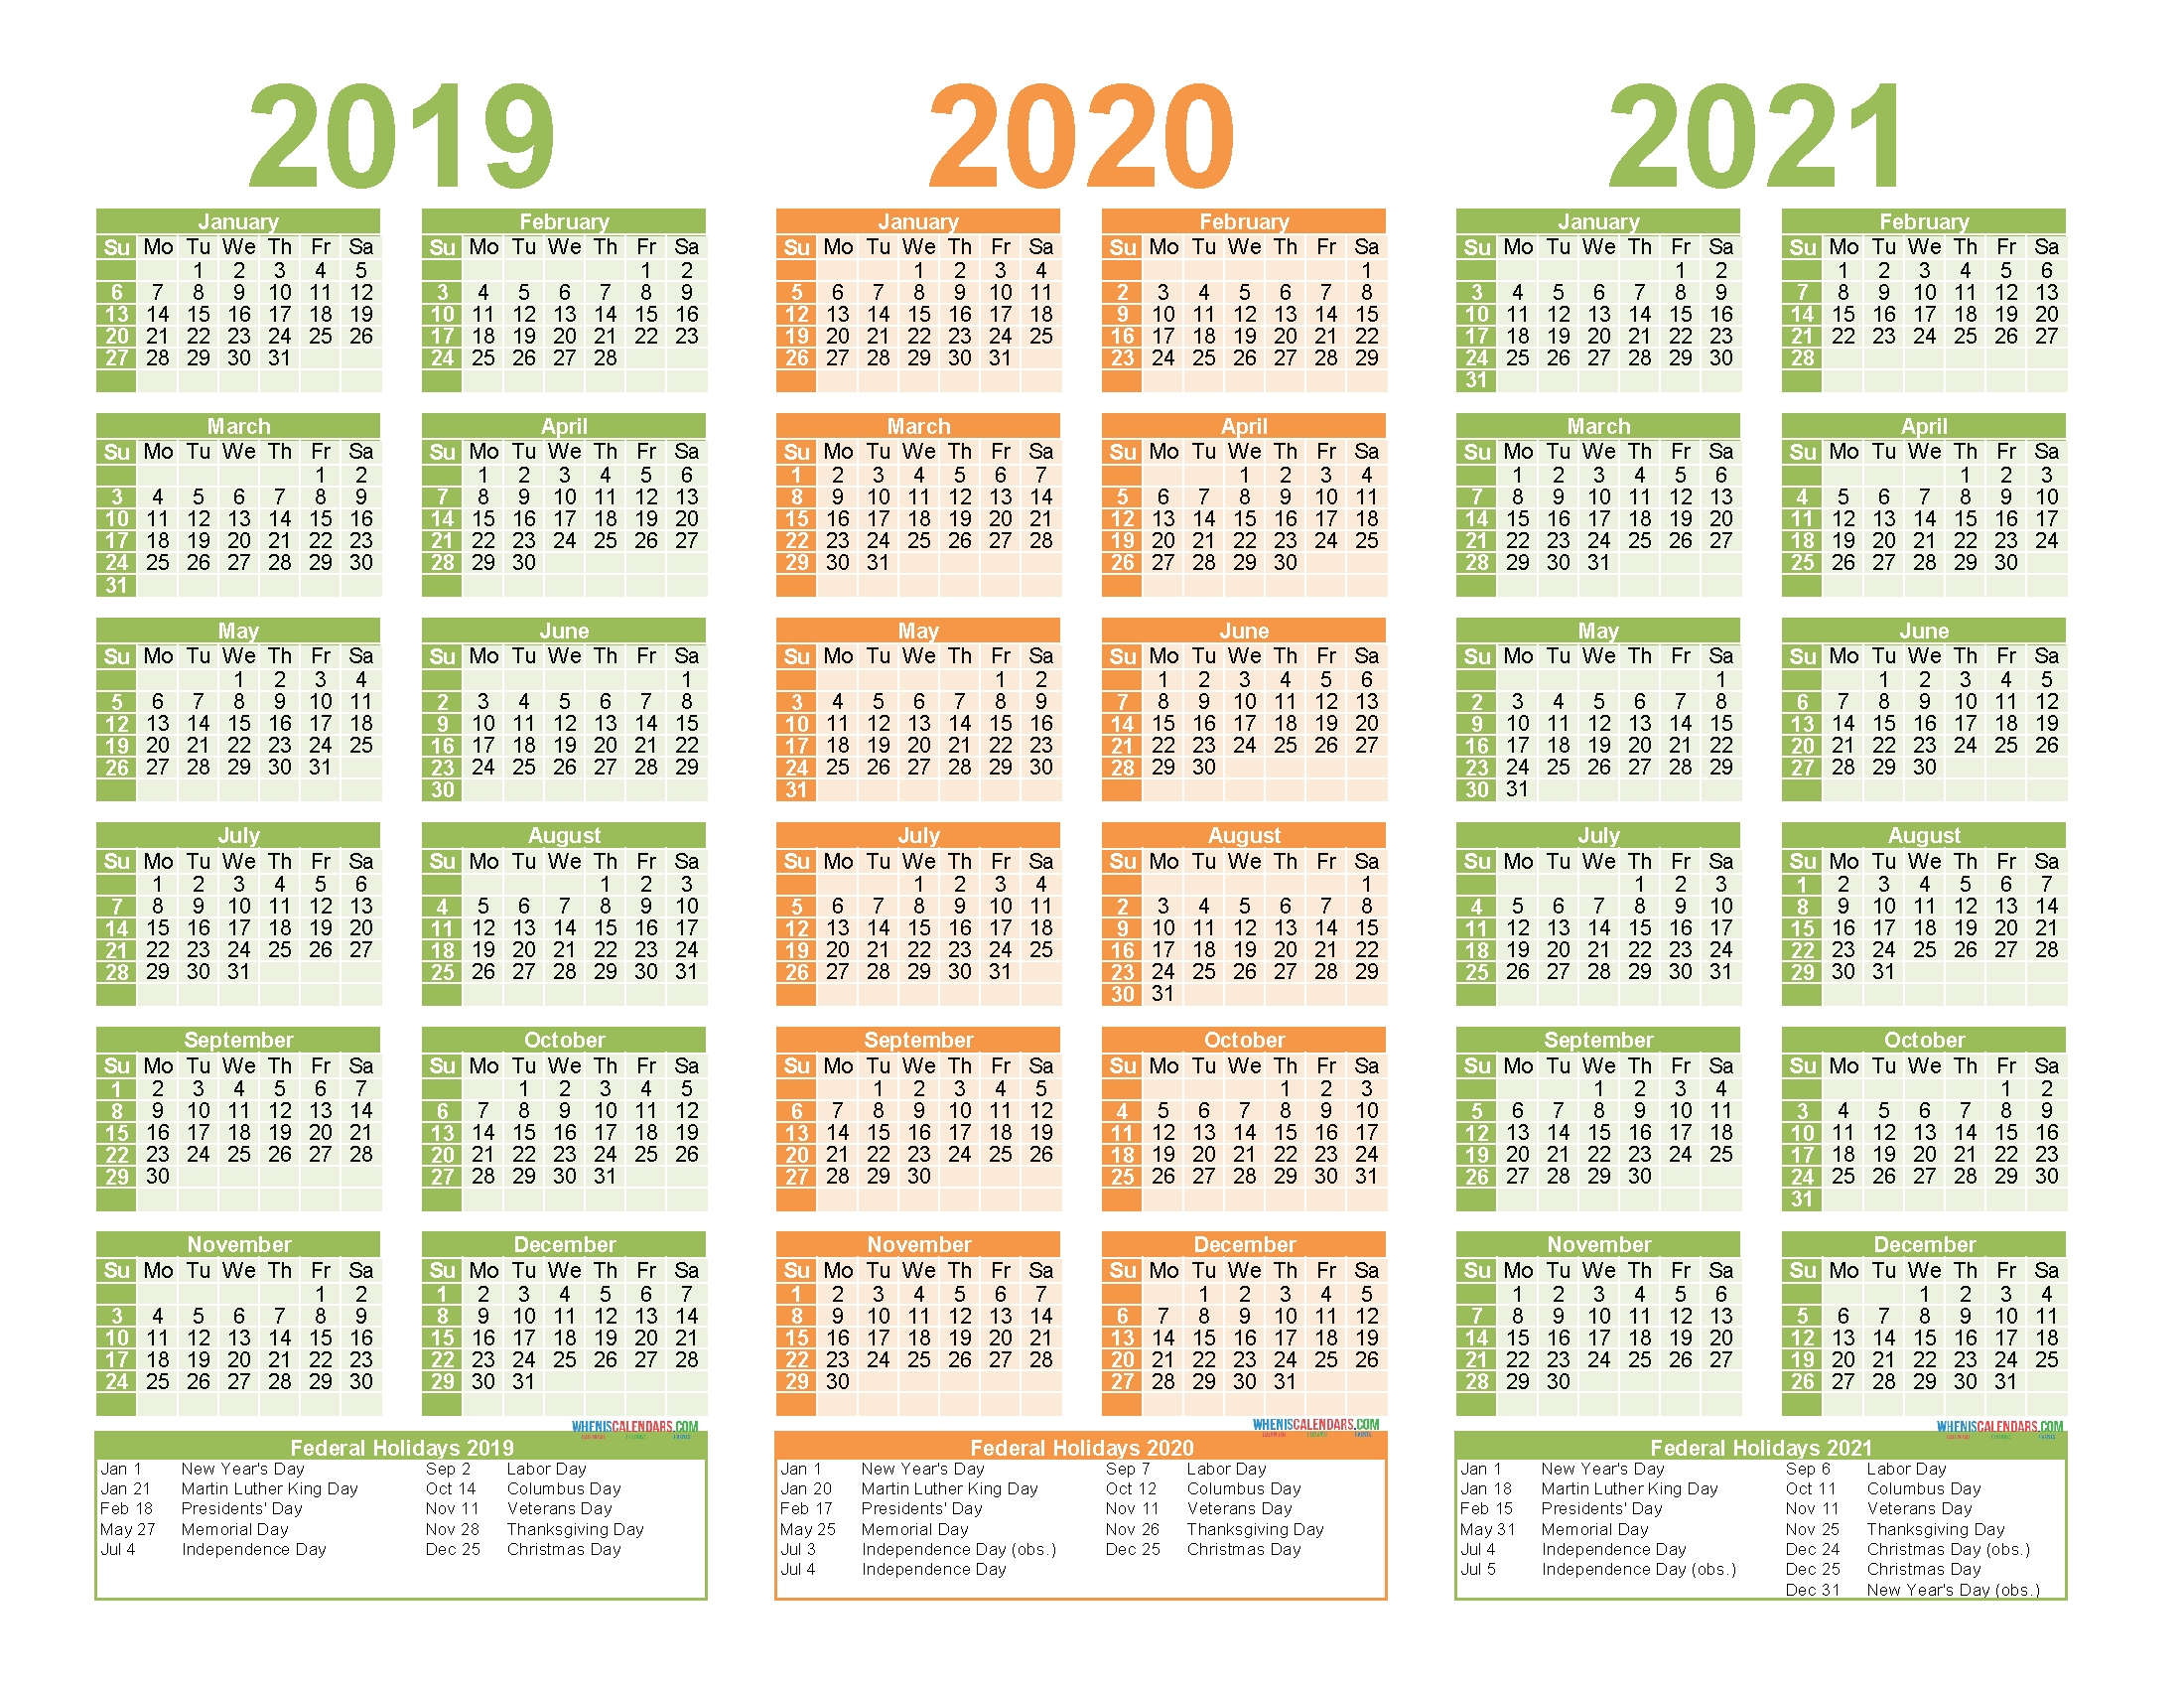 2019 To 2021 Calendar Printable Free Pdf, Word, Image | Free inside Free Printable Calendar For 2019 2020 2021